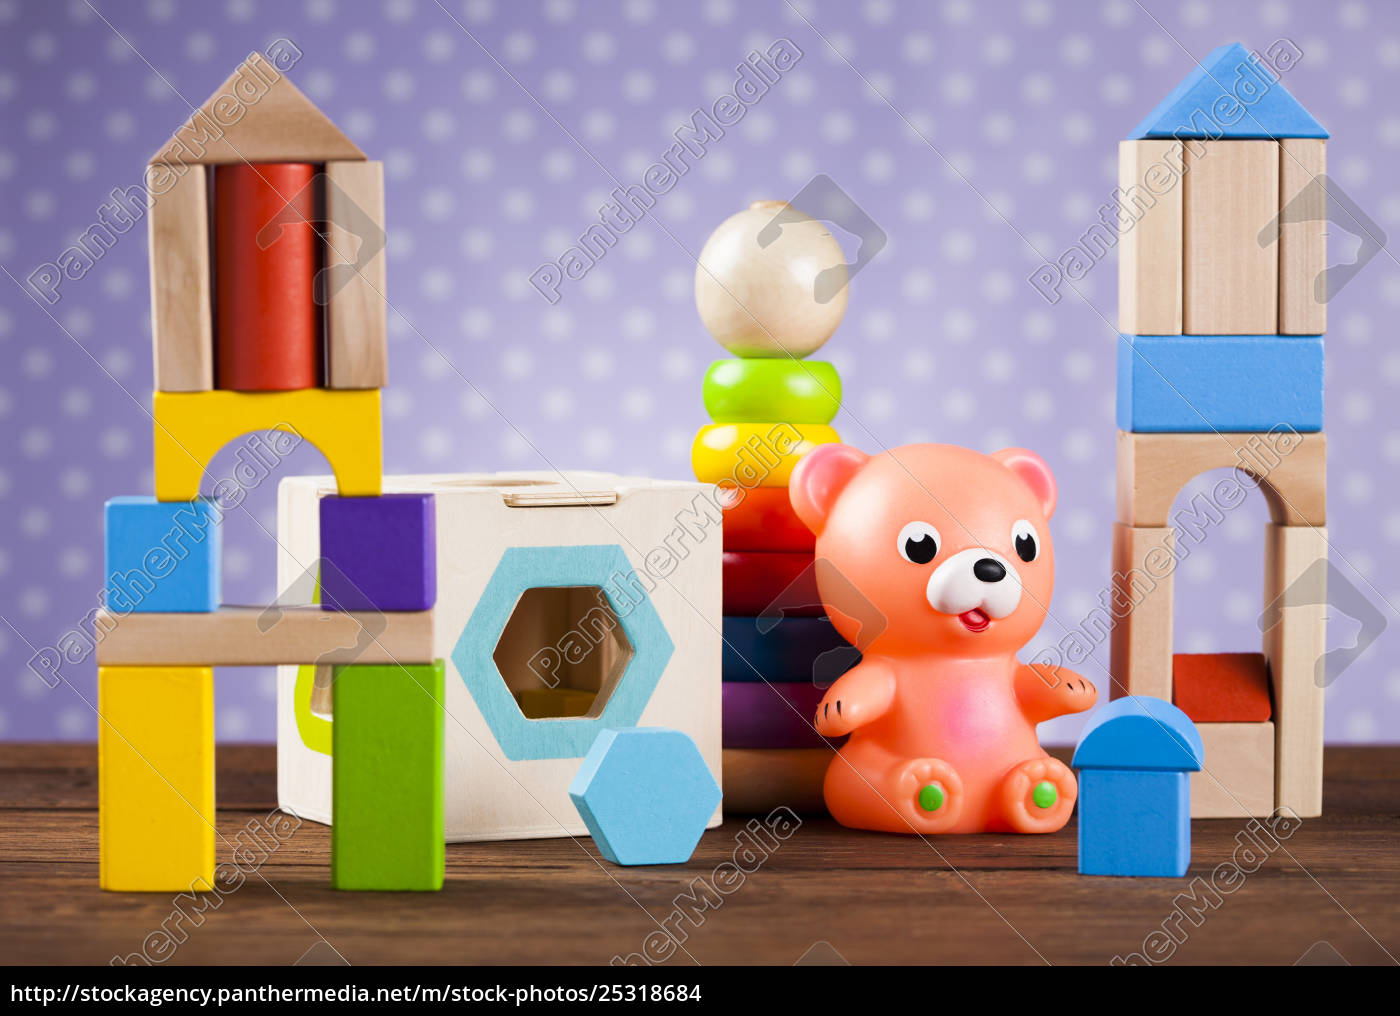 children's, of, toy, accessories, on, wooden - 25318684